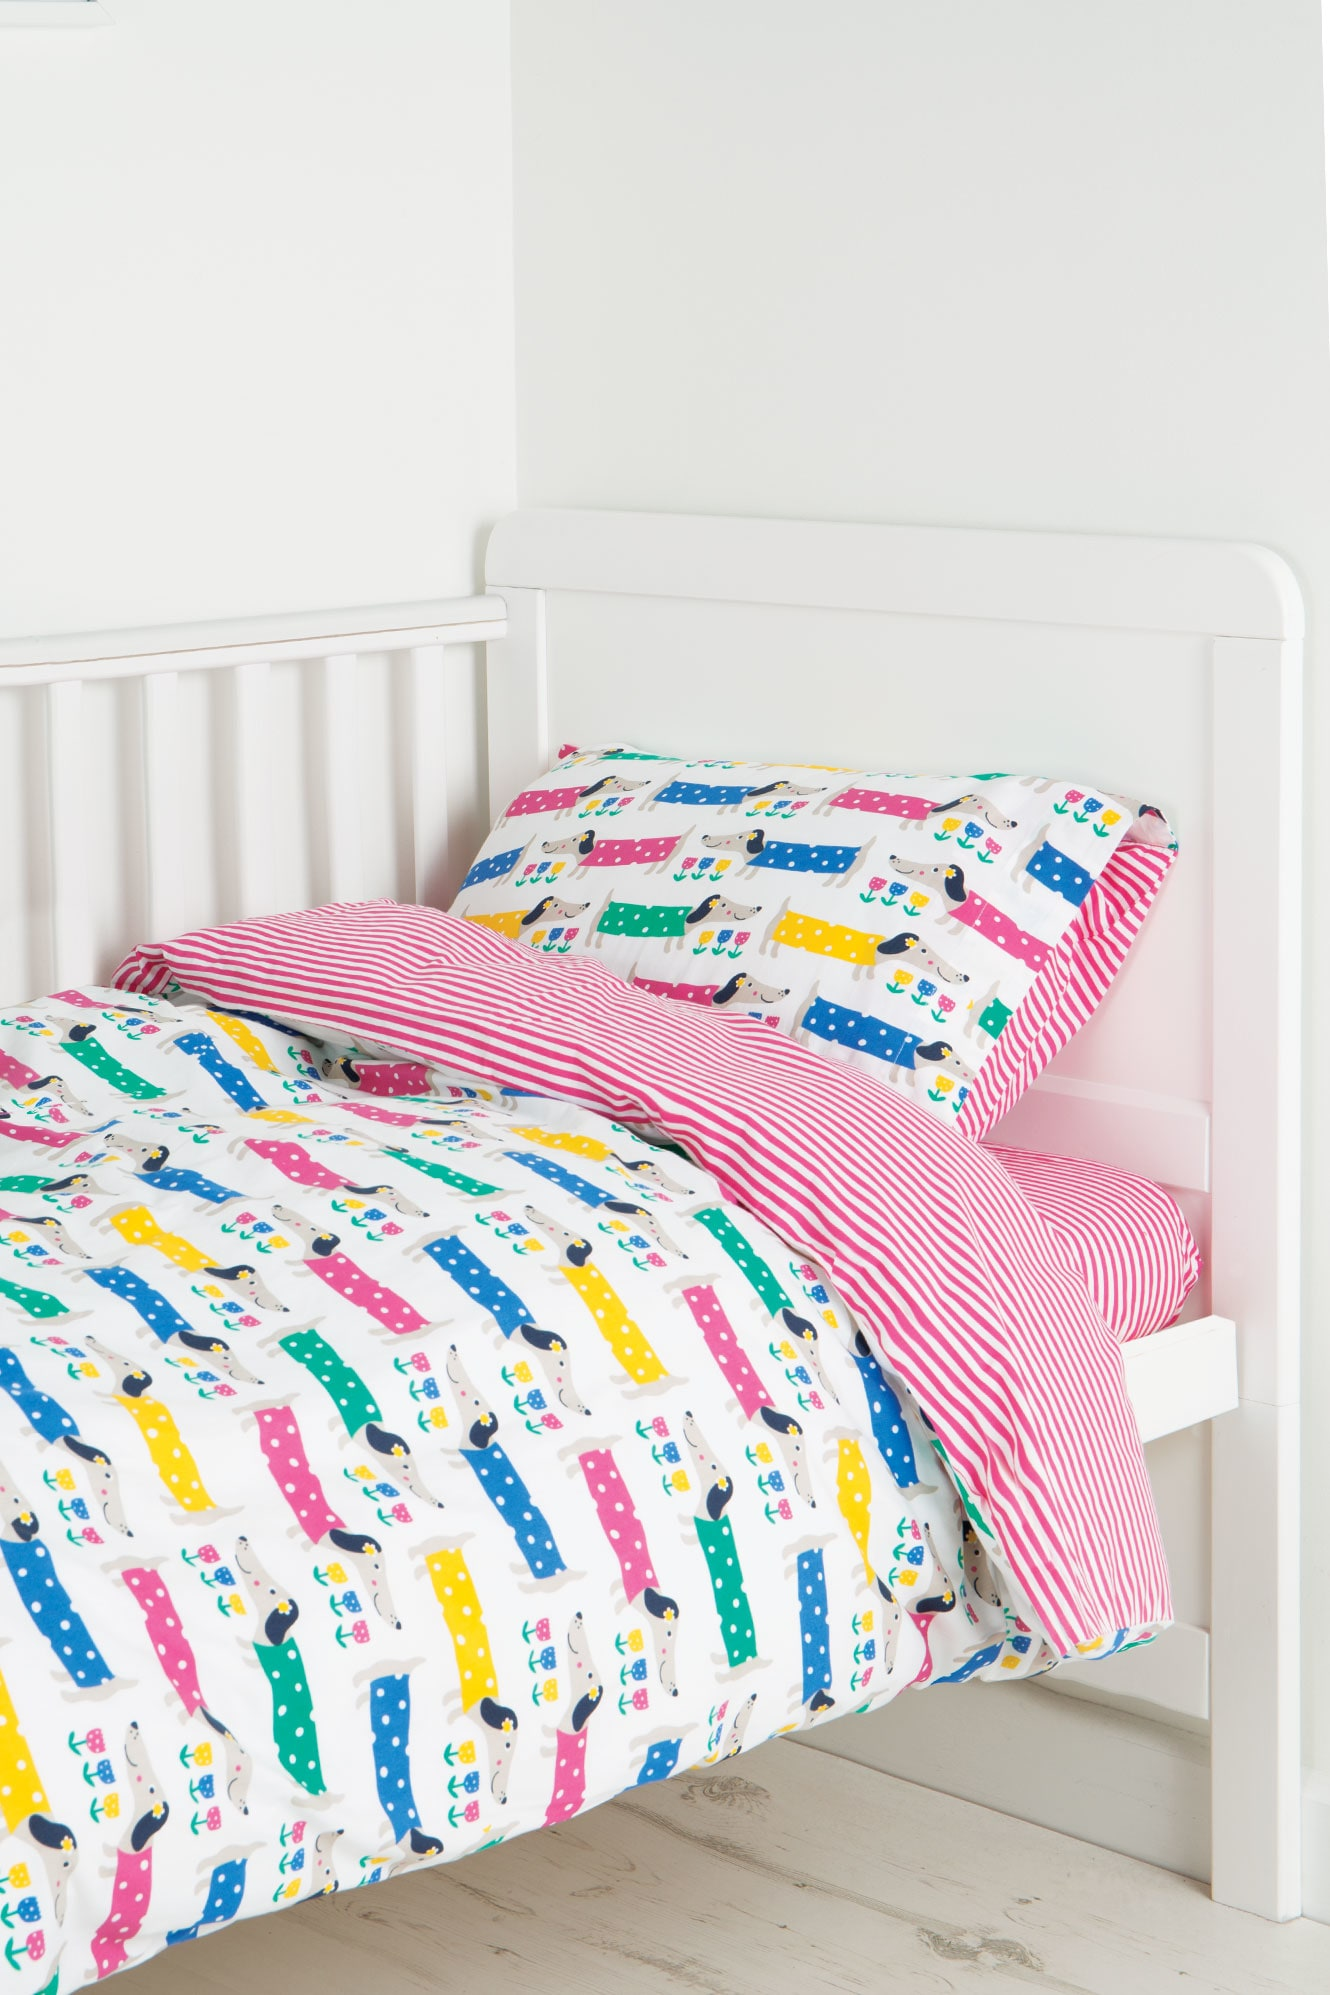 Stockists of Cosy Cot Bed Set